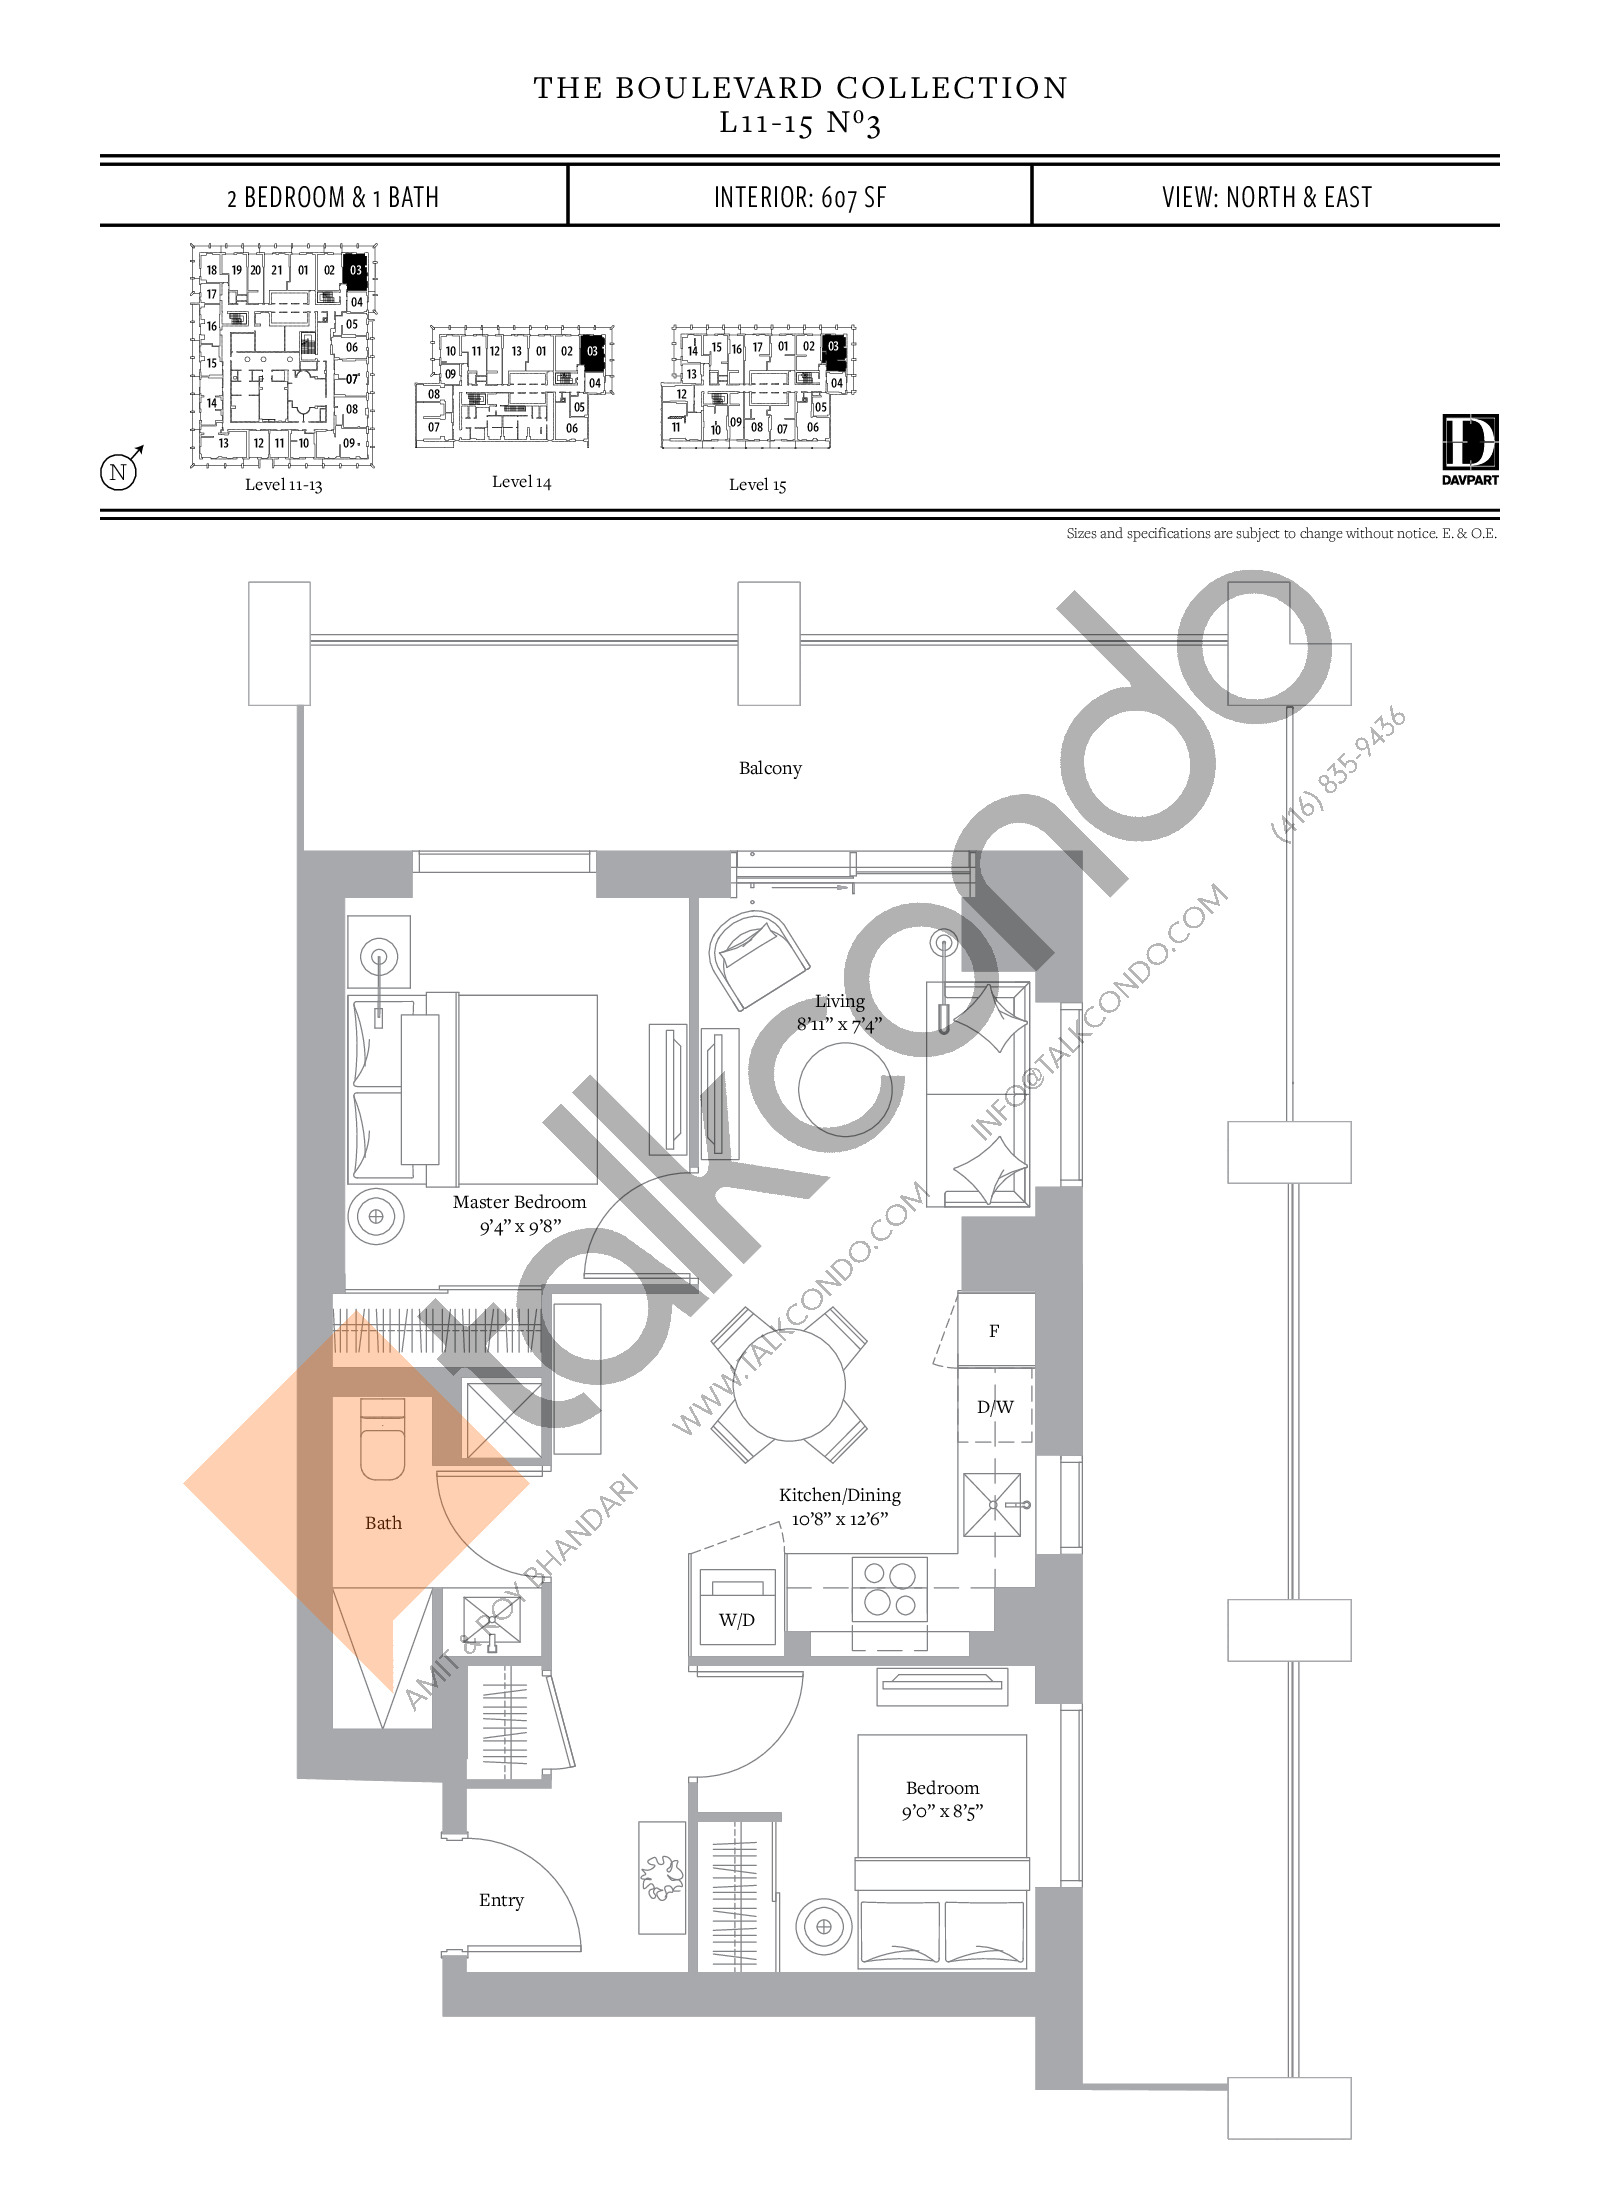 No 3 - The Boulevard Collection Floor Plan at The United Bldg. Condos - 607 sq.ft